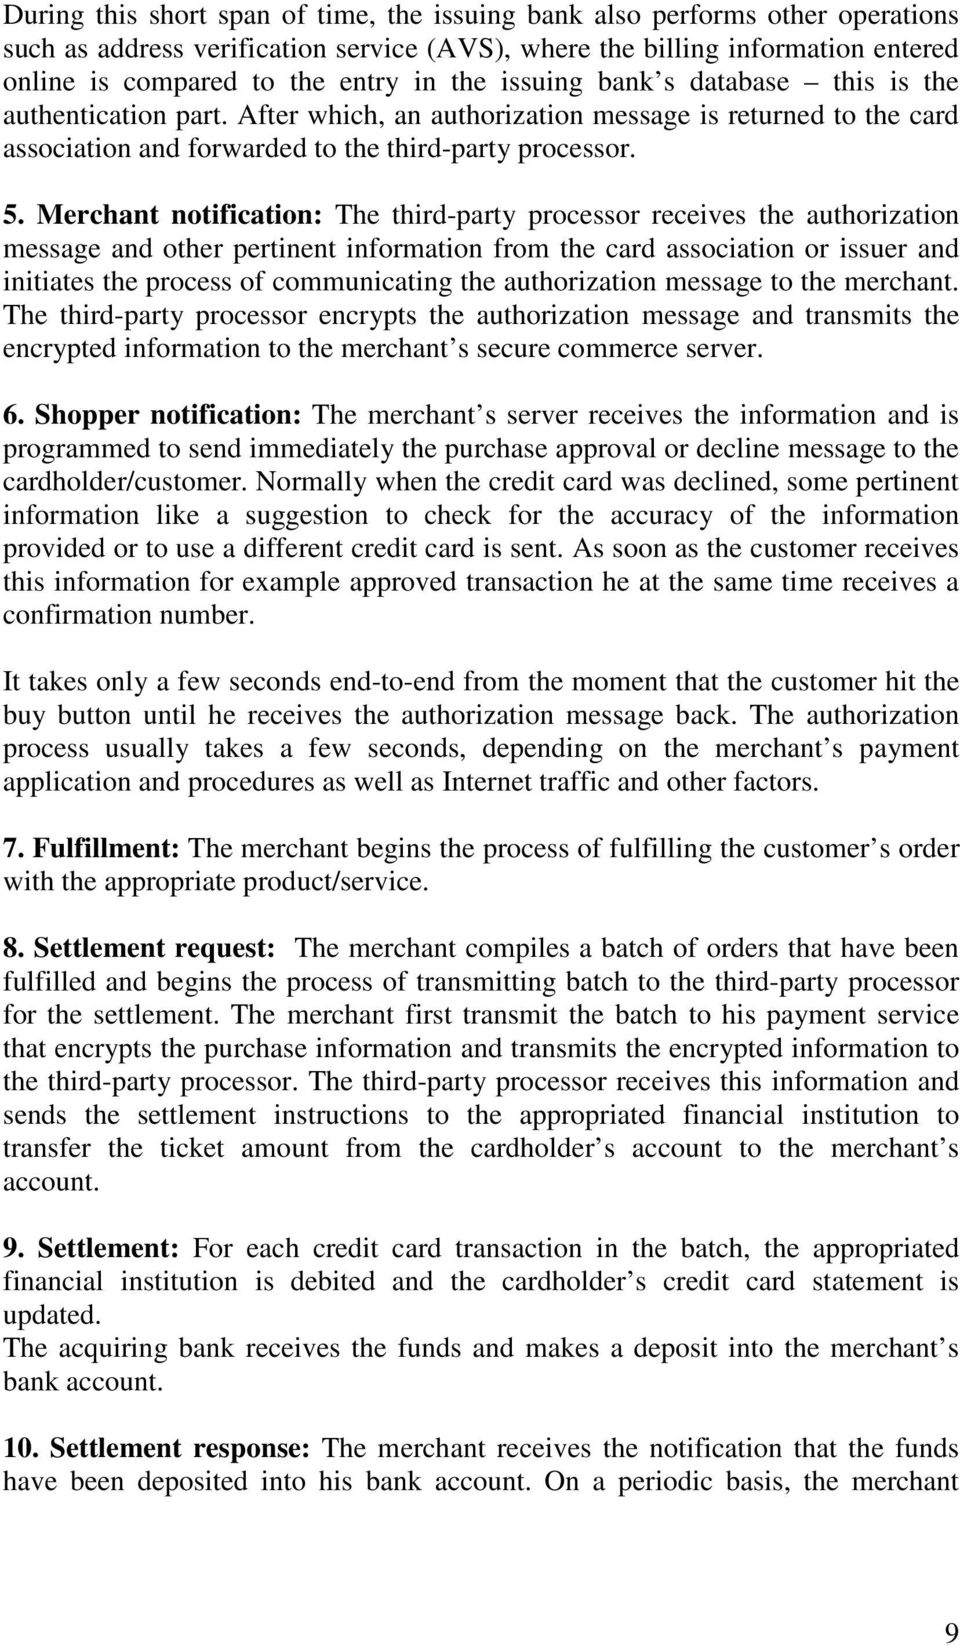 Merchant notification: The third-party processor receives the authorization message and other pertinent information from the card association or issuer and initiates the process of communicating the